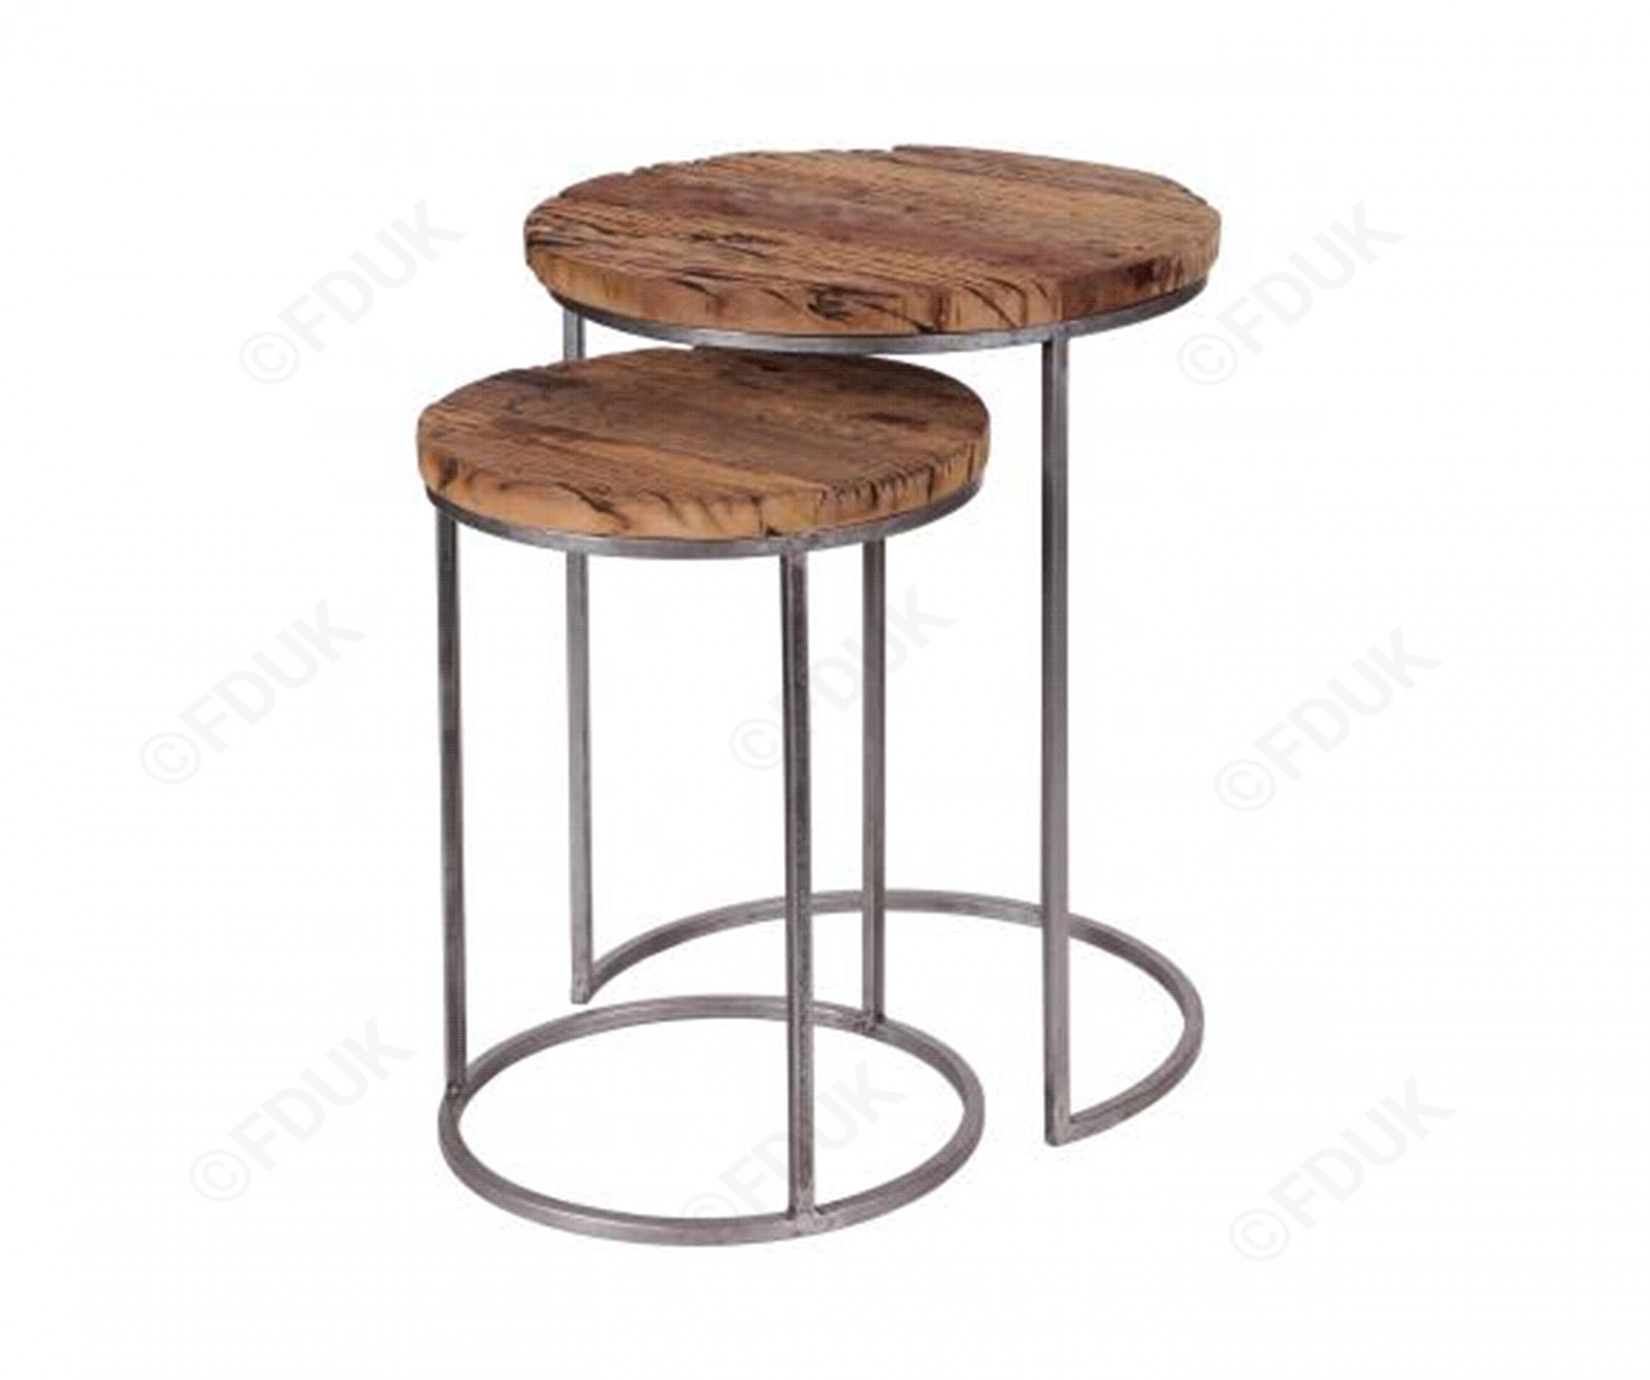 besp oak railway leather furniture round nest side tables fduk best end for guarantee short cocktail table west elm parsons acrylic nesting big lots living room sets white bedside